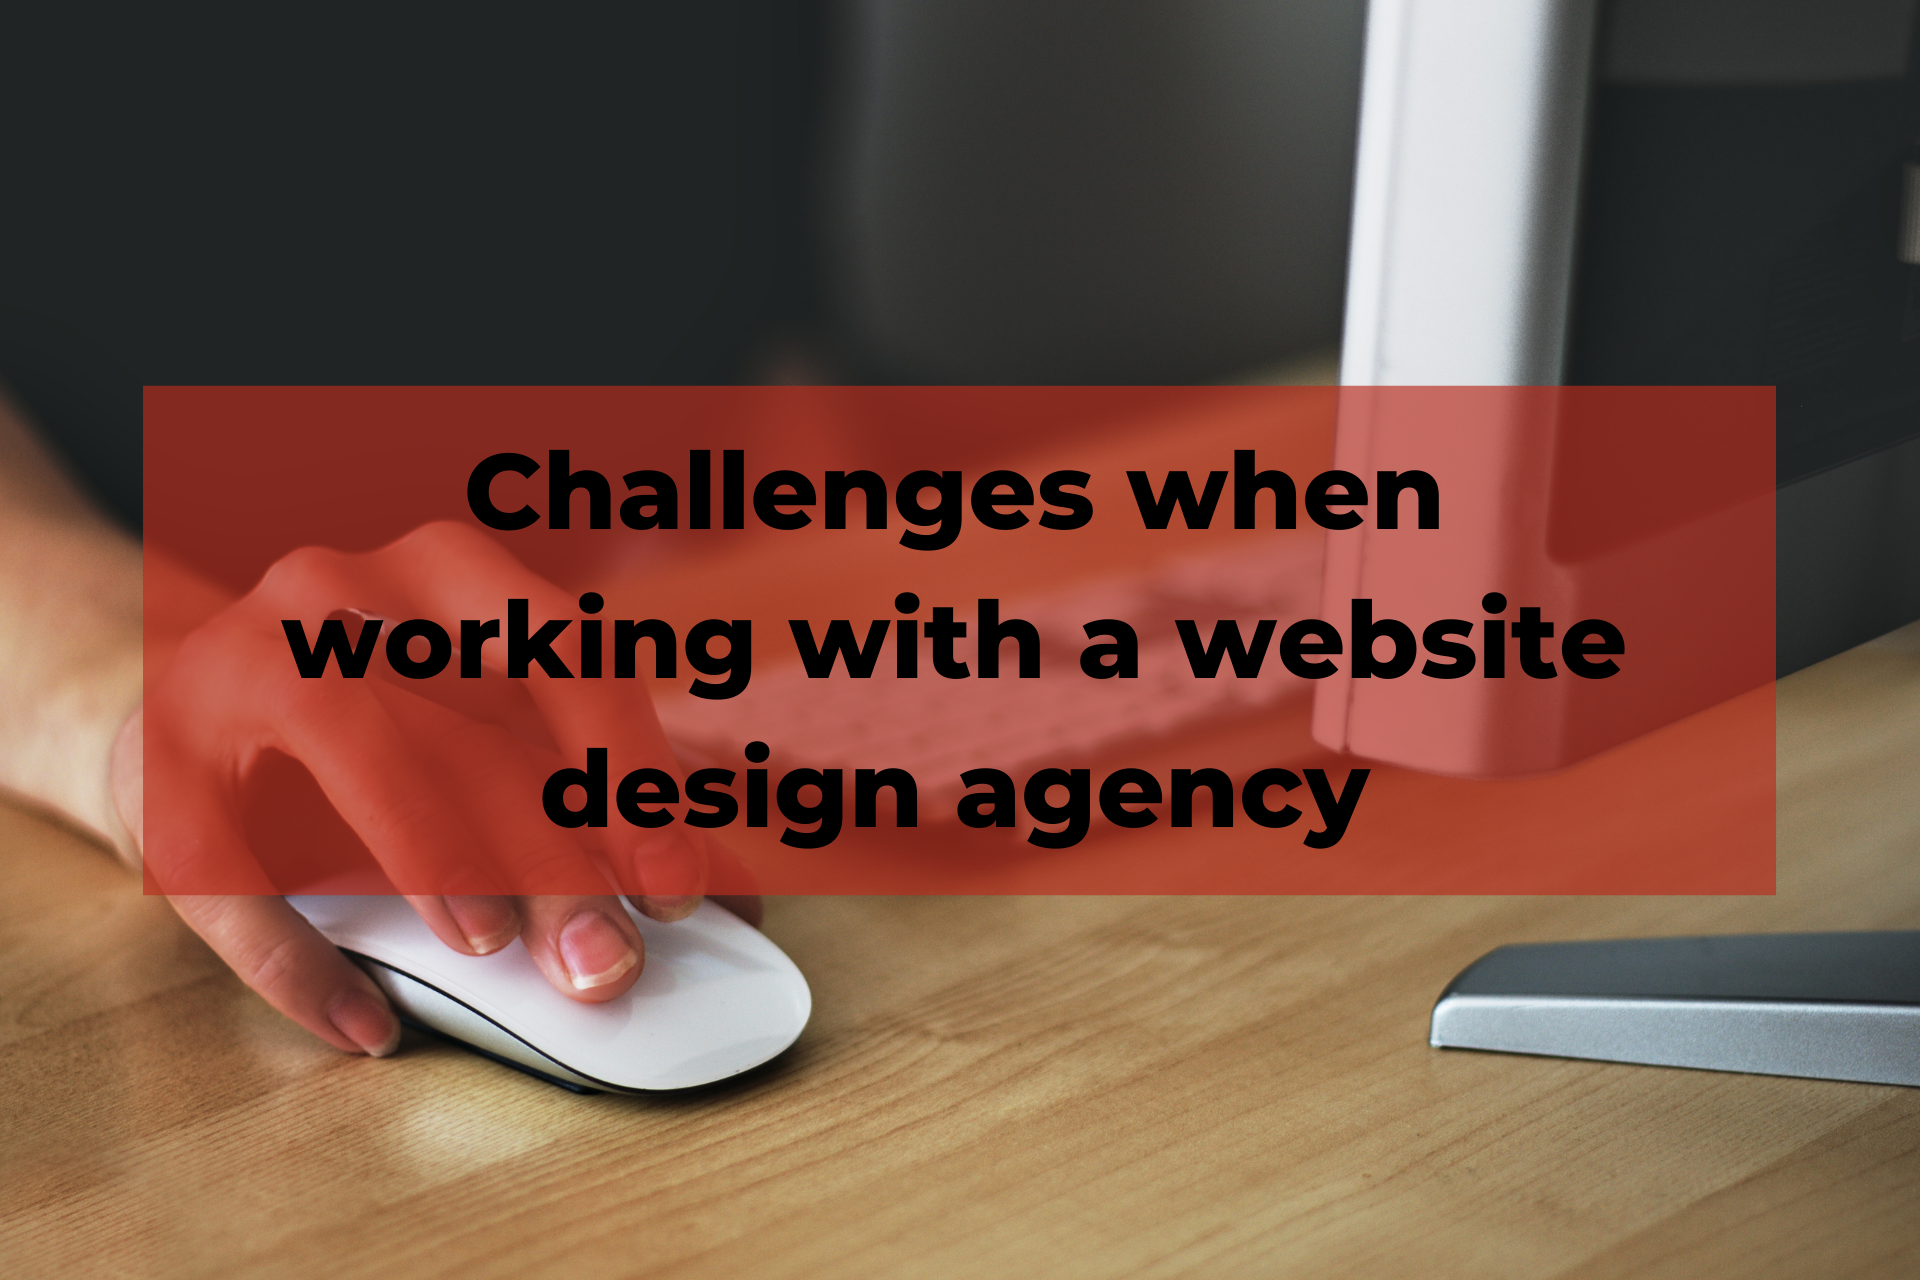 Challenges when working with a website design agency